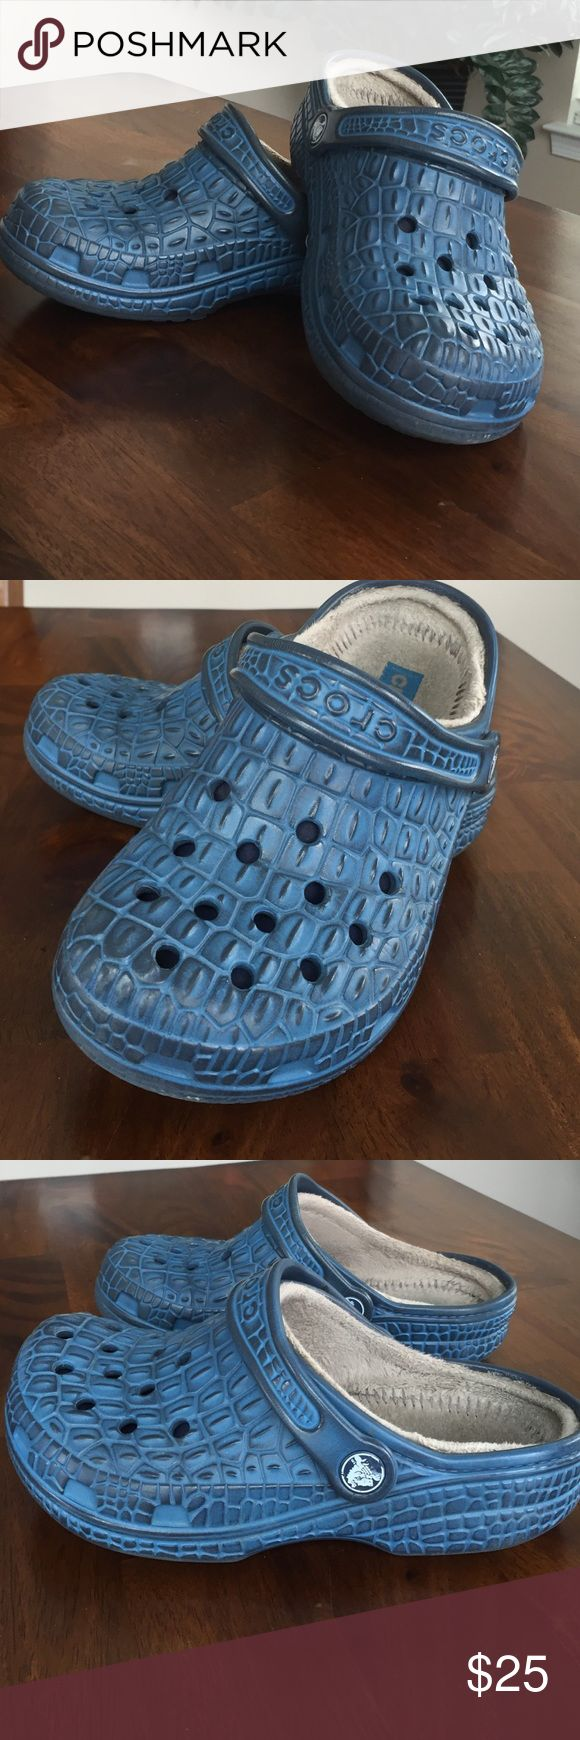 Boys Crocs Sale Blue Crocs with ribbed pattern.  Blue with lining.  Size 3 boys.  Super cute!!  CROCS Shoes Sandals & Flip Flops